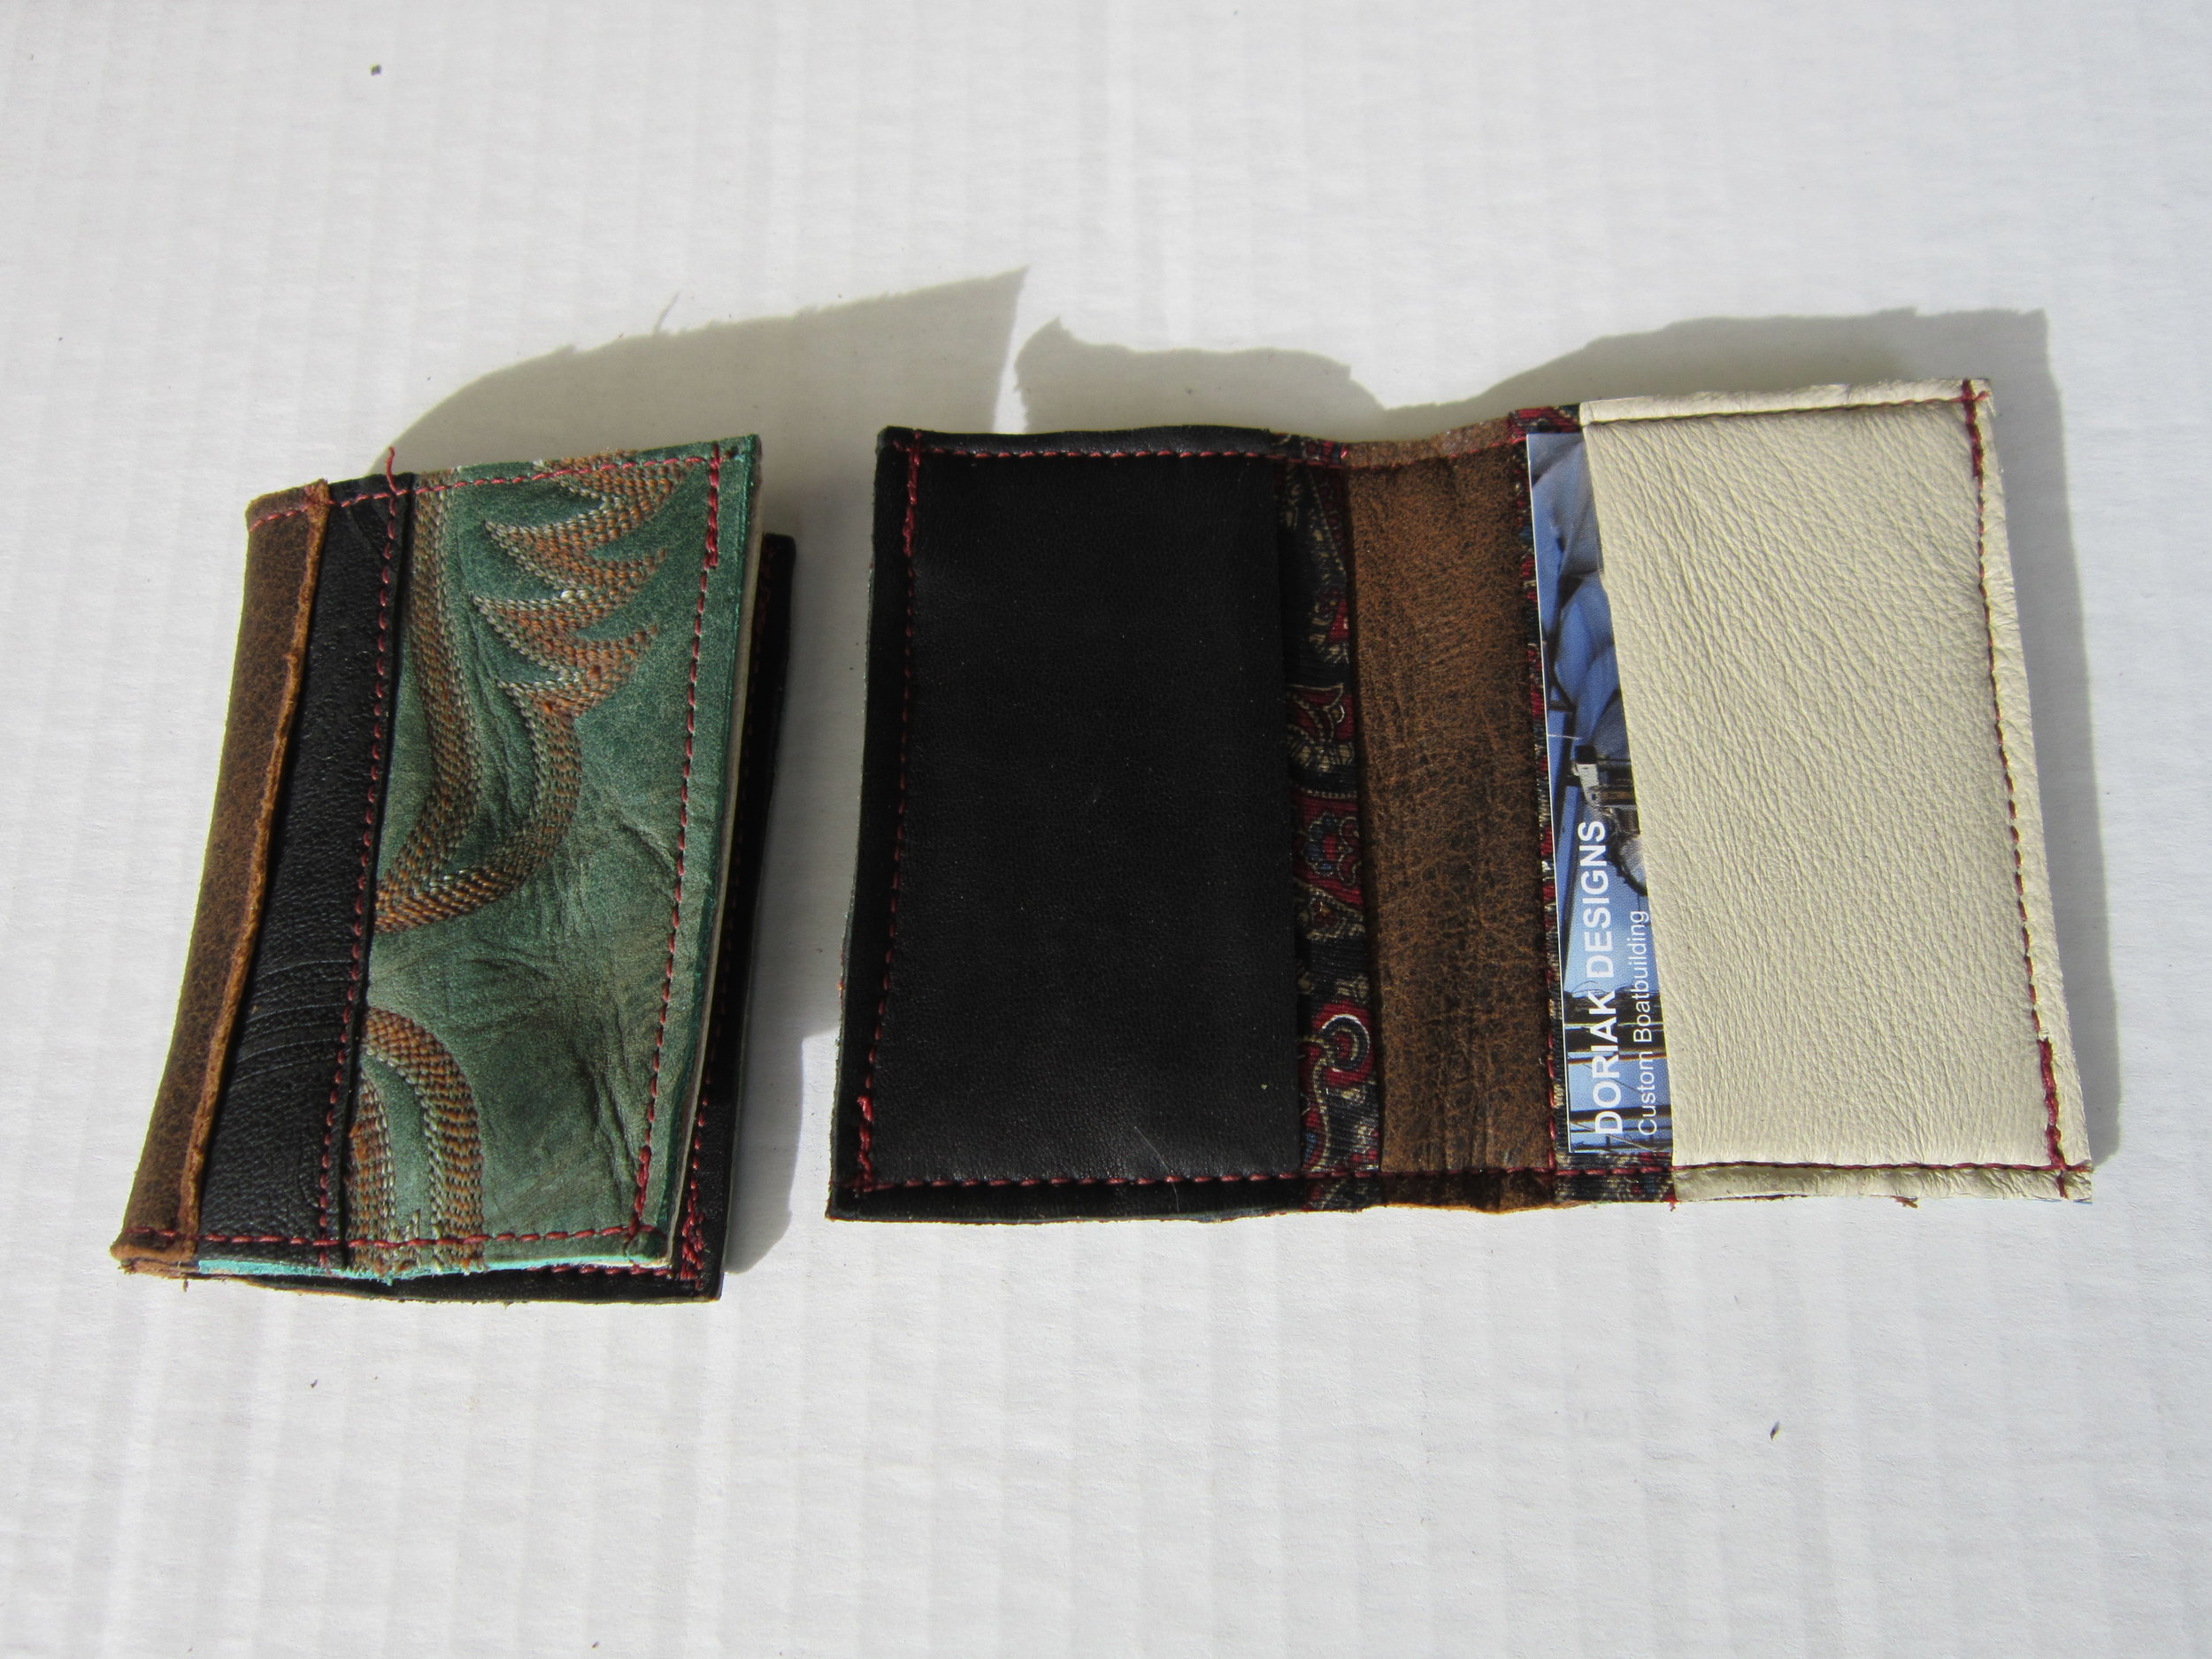 Hand-made wallets from reclaimed cowboy boots, leather jackets, and silk ties